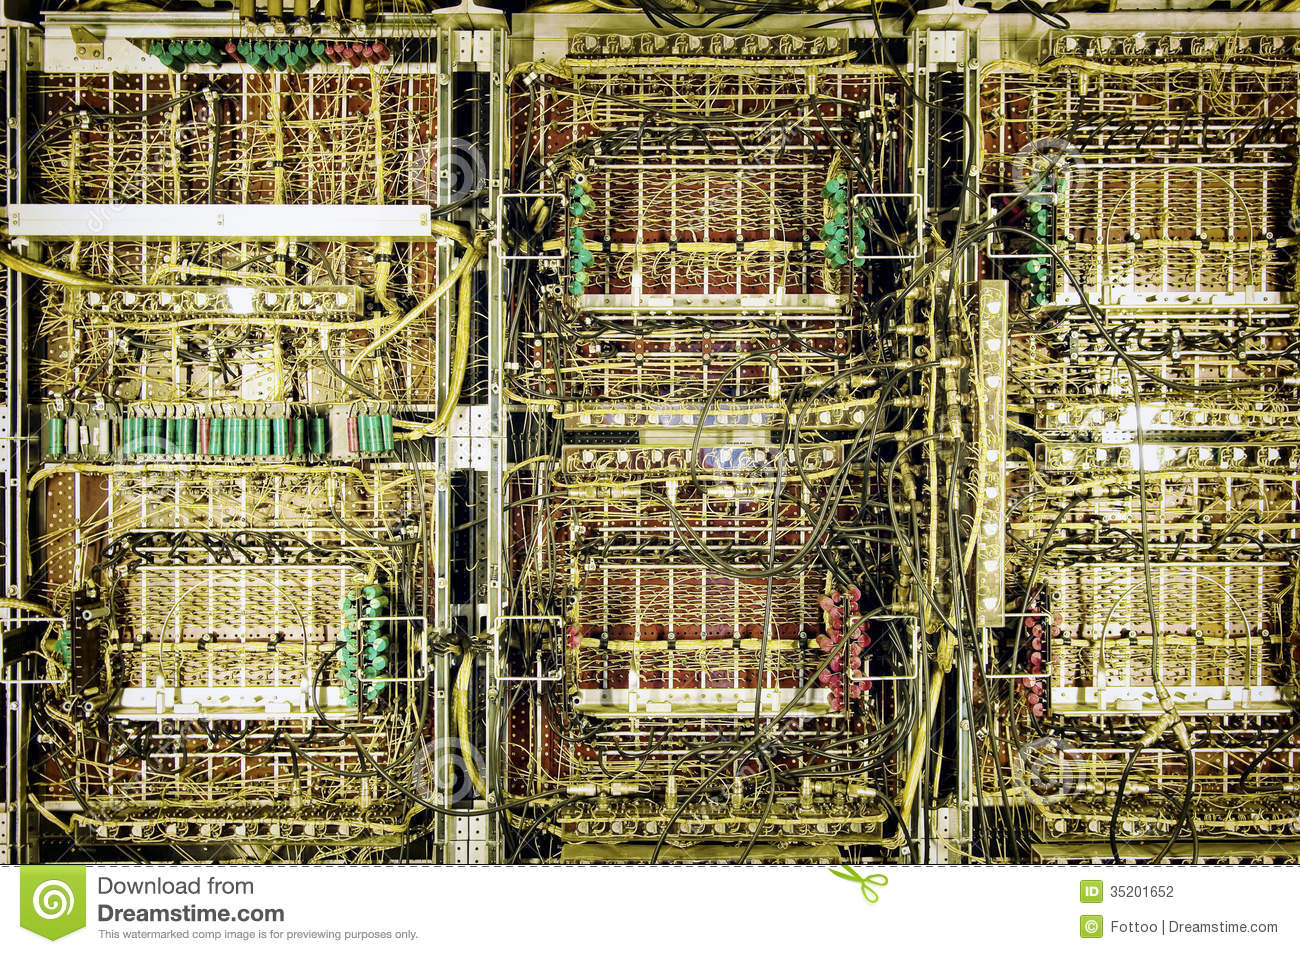 Unlimited Data Plans >> Circuit board stock photo. Image of industry, board, history - 35201652